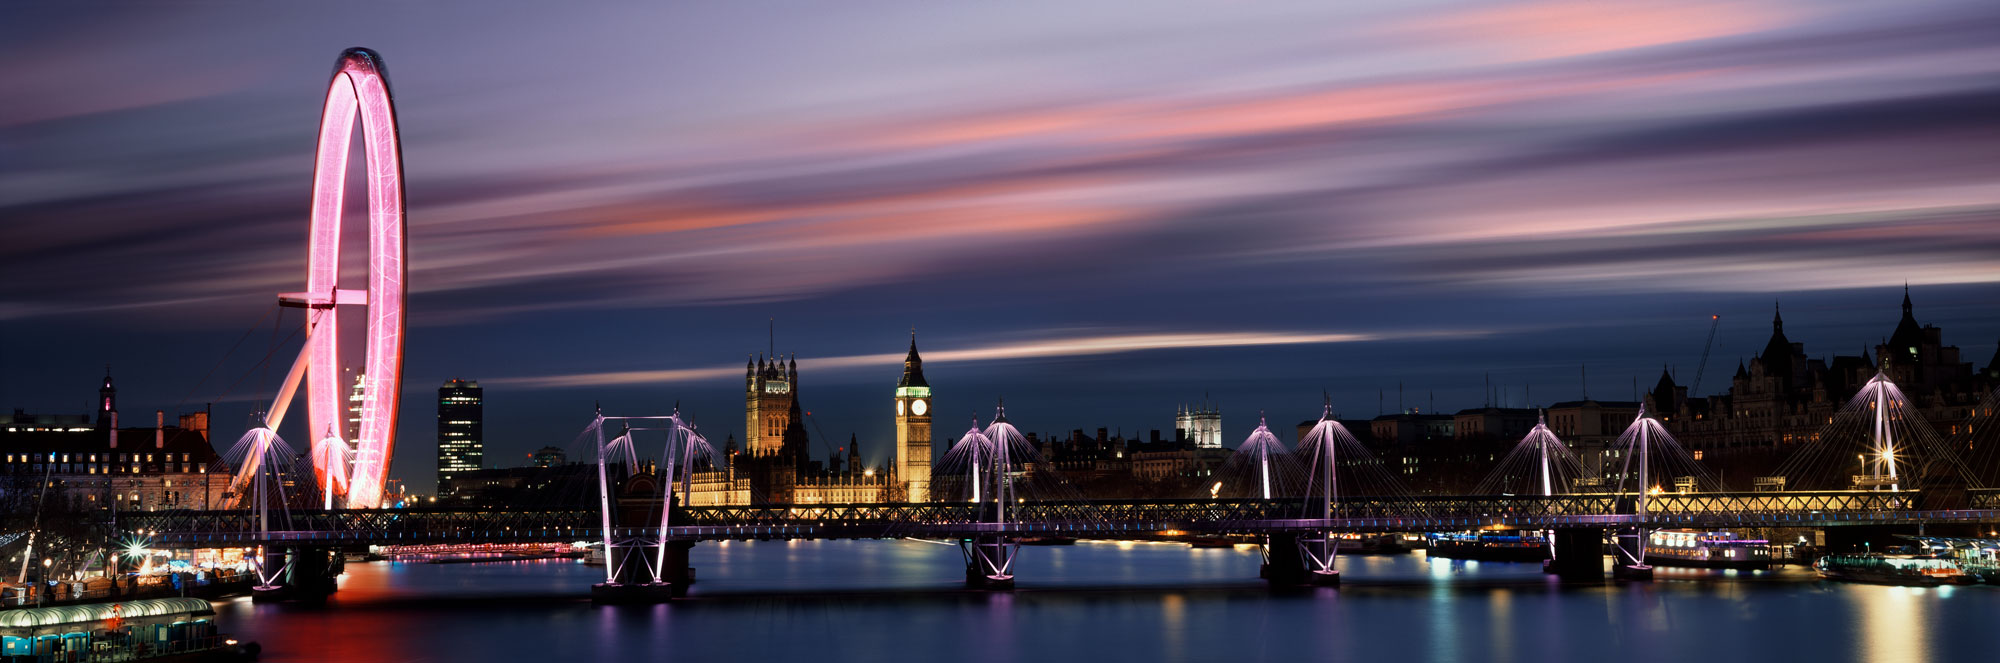 The London Eye and houses of parliament in Westminster